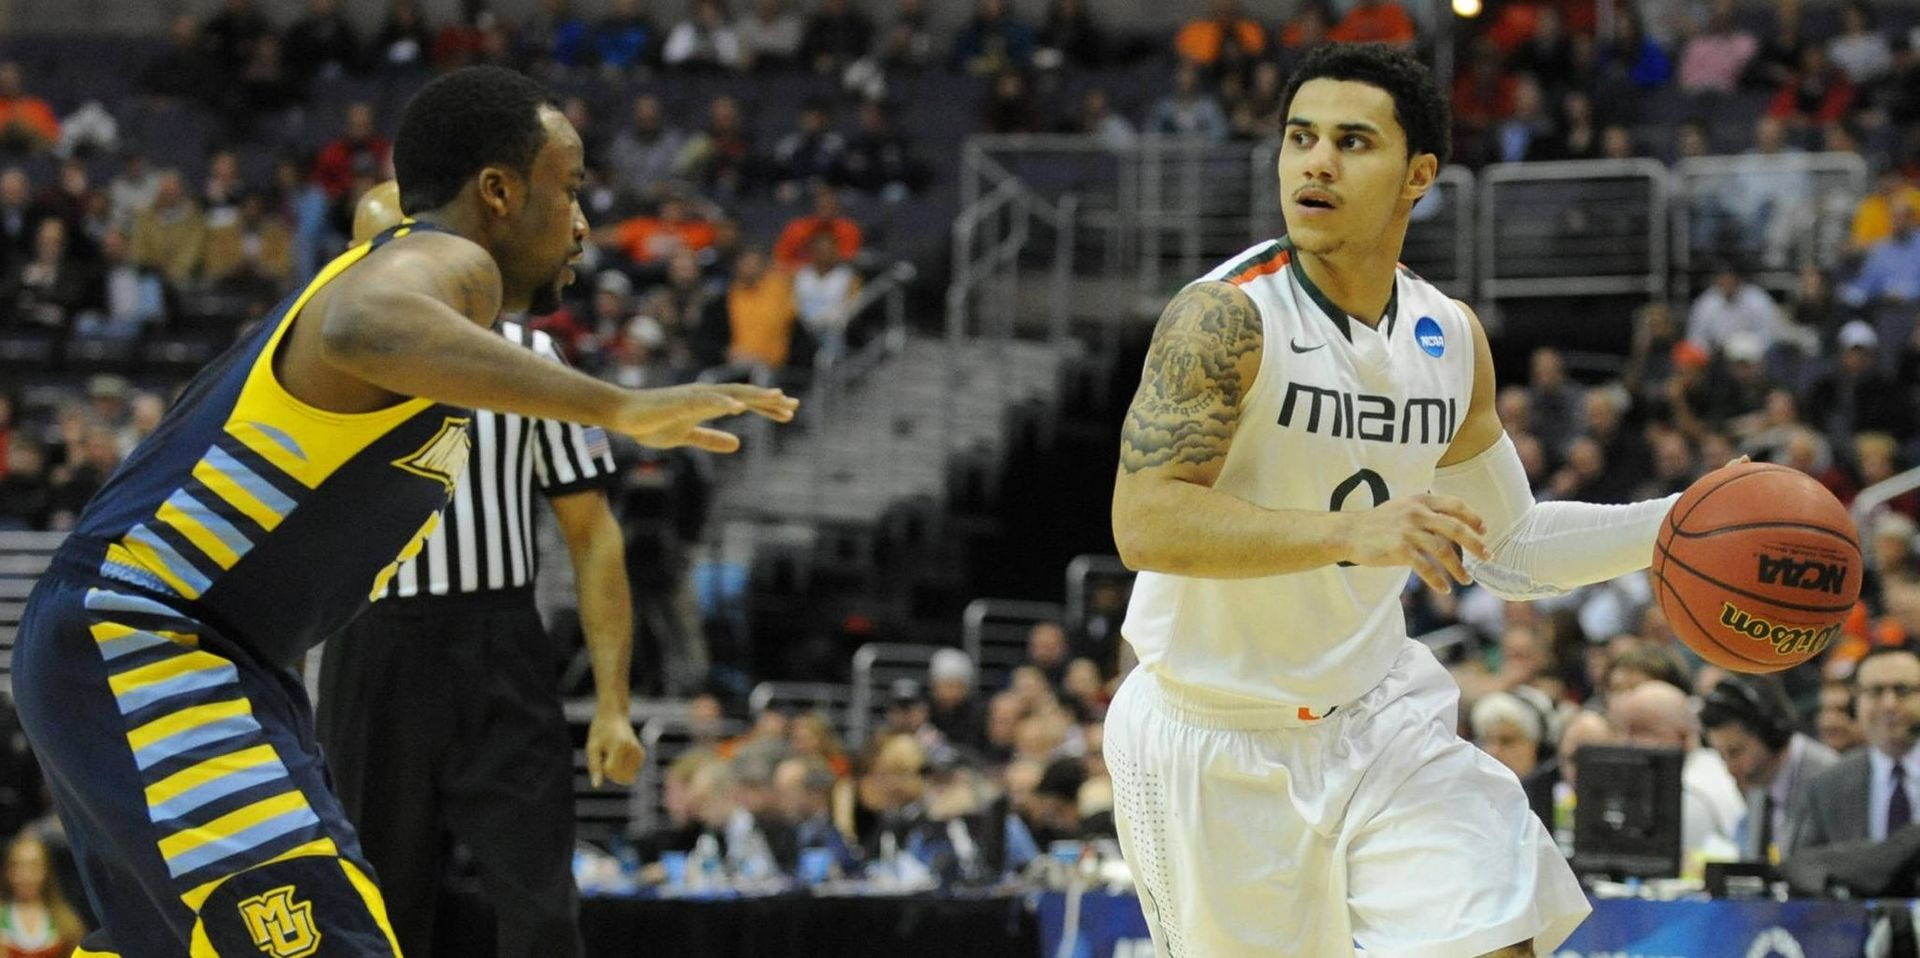 MBB's Historic Season Ends with Sweet 16 Loss